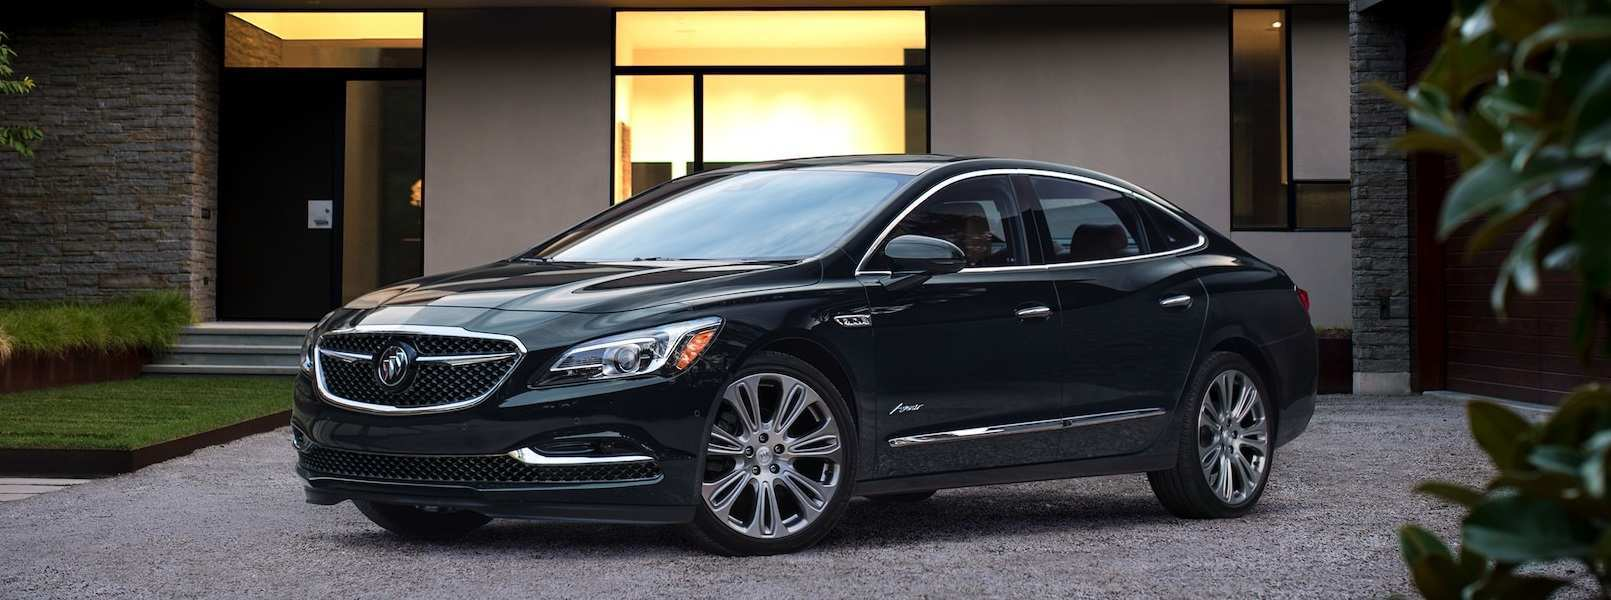 49 The Best 2019 Buick LaCrosses Review And Release Date